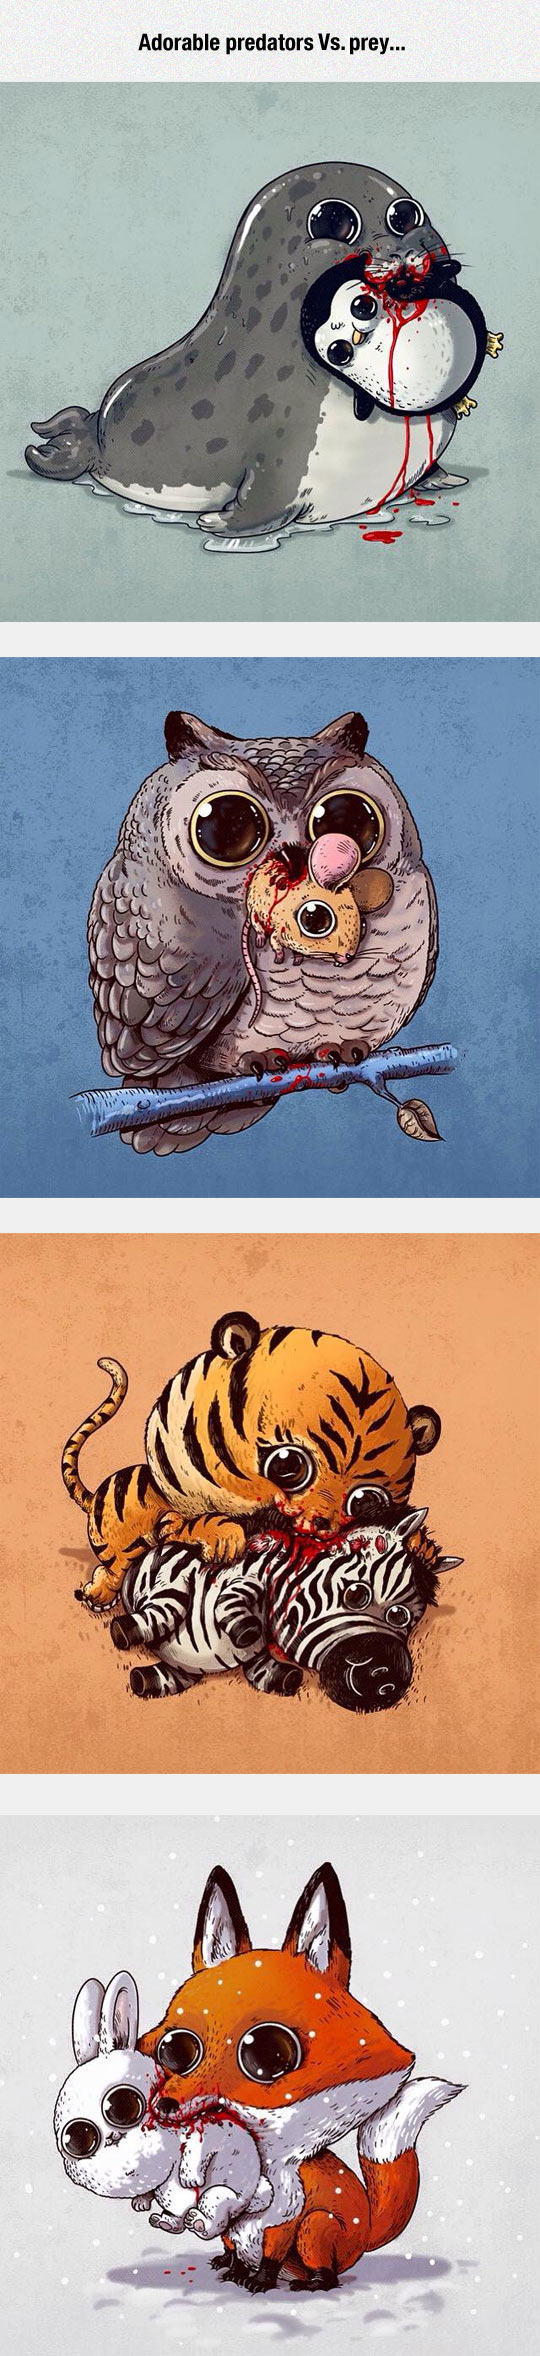 funny-adorable-predator-prey-illustration